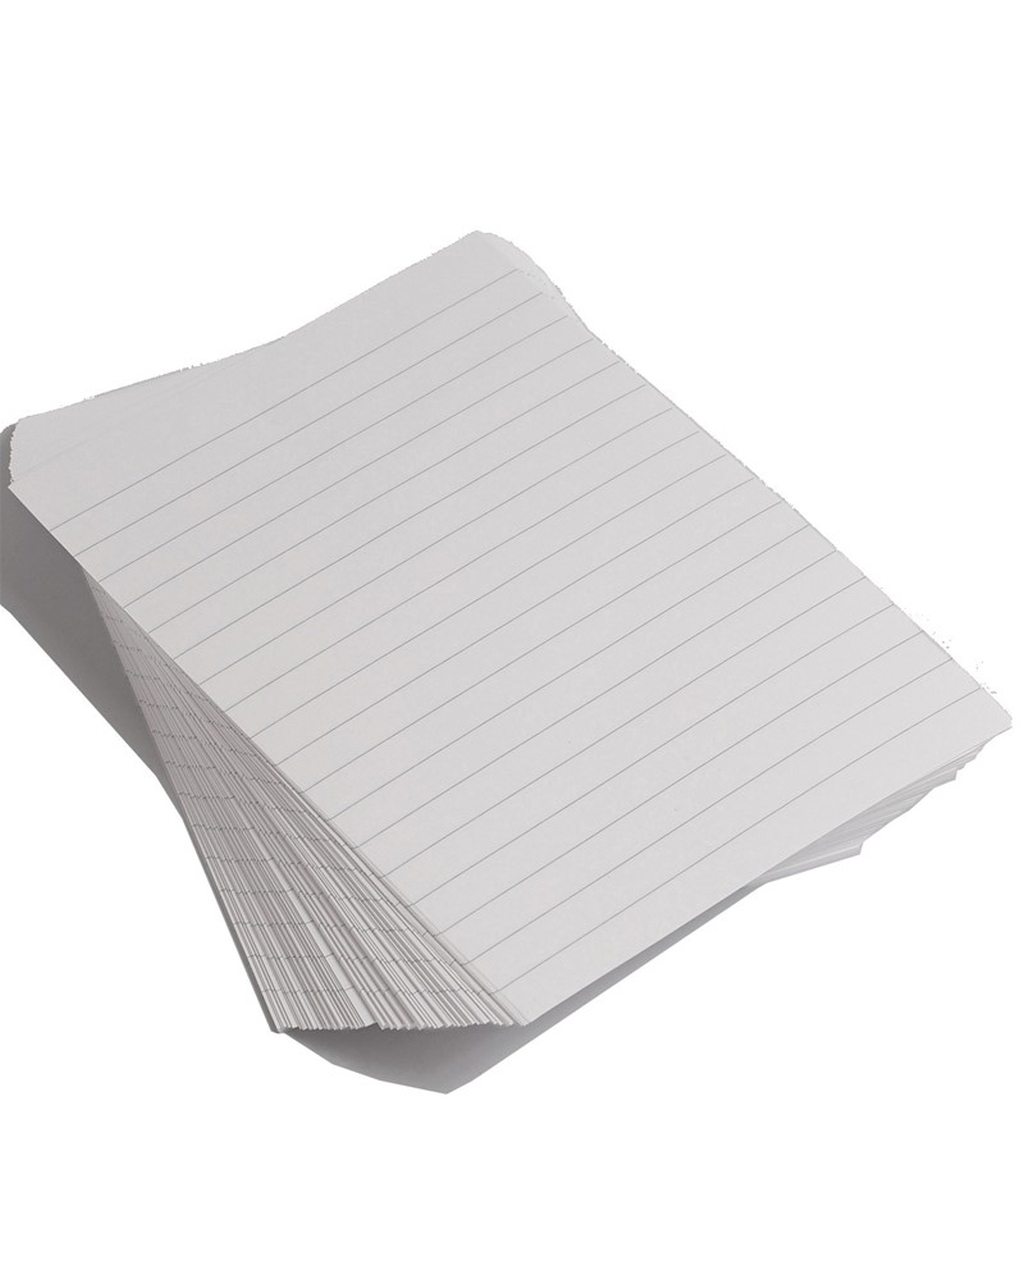 A4 Exercise Paper Unpunched, 12mm Ruled